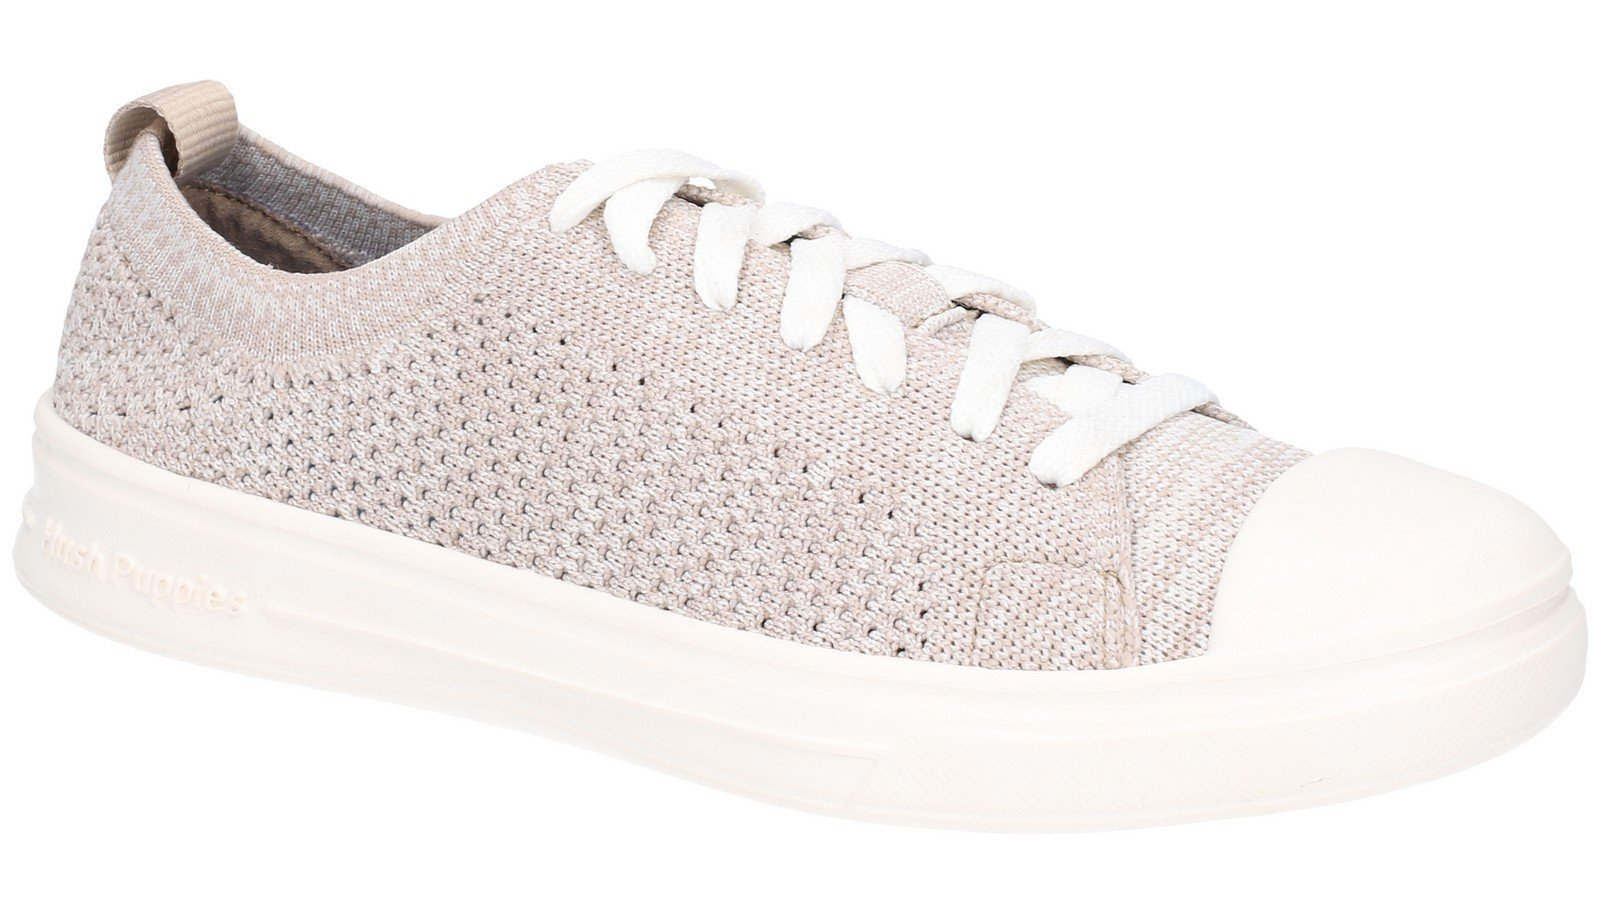 Hush Puppies Women's Schnoodle Lace Up Summer Shoe Various Colours 28425 - Taupe 3